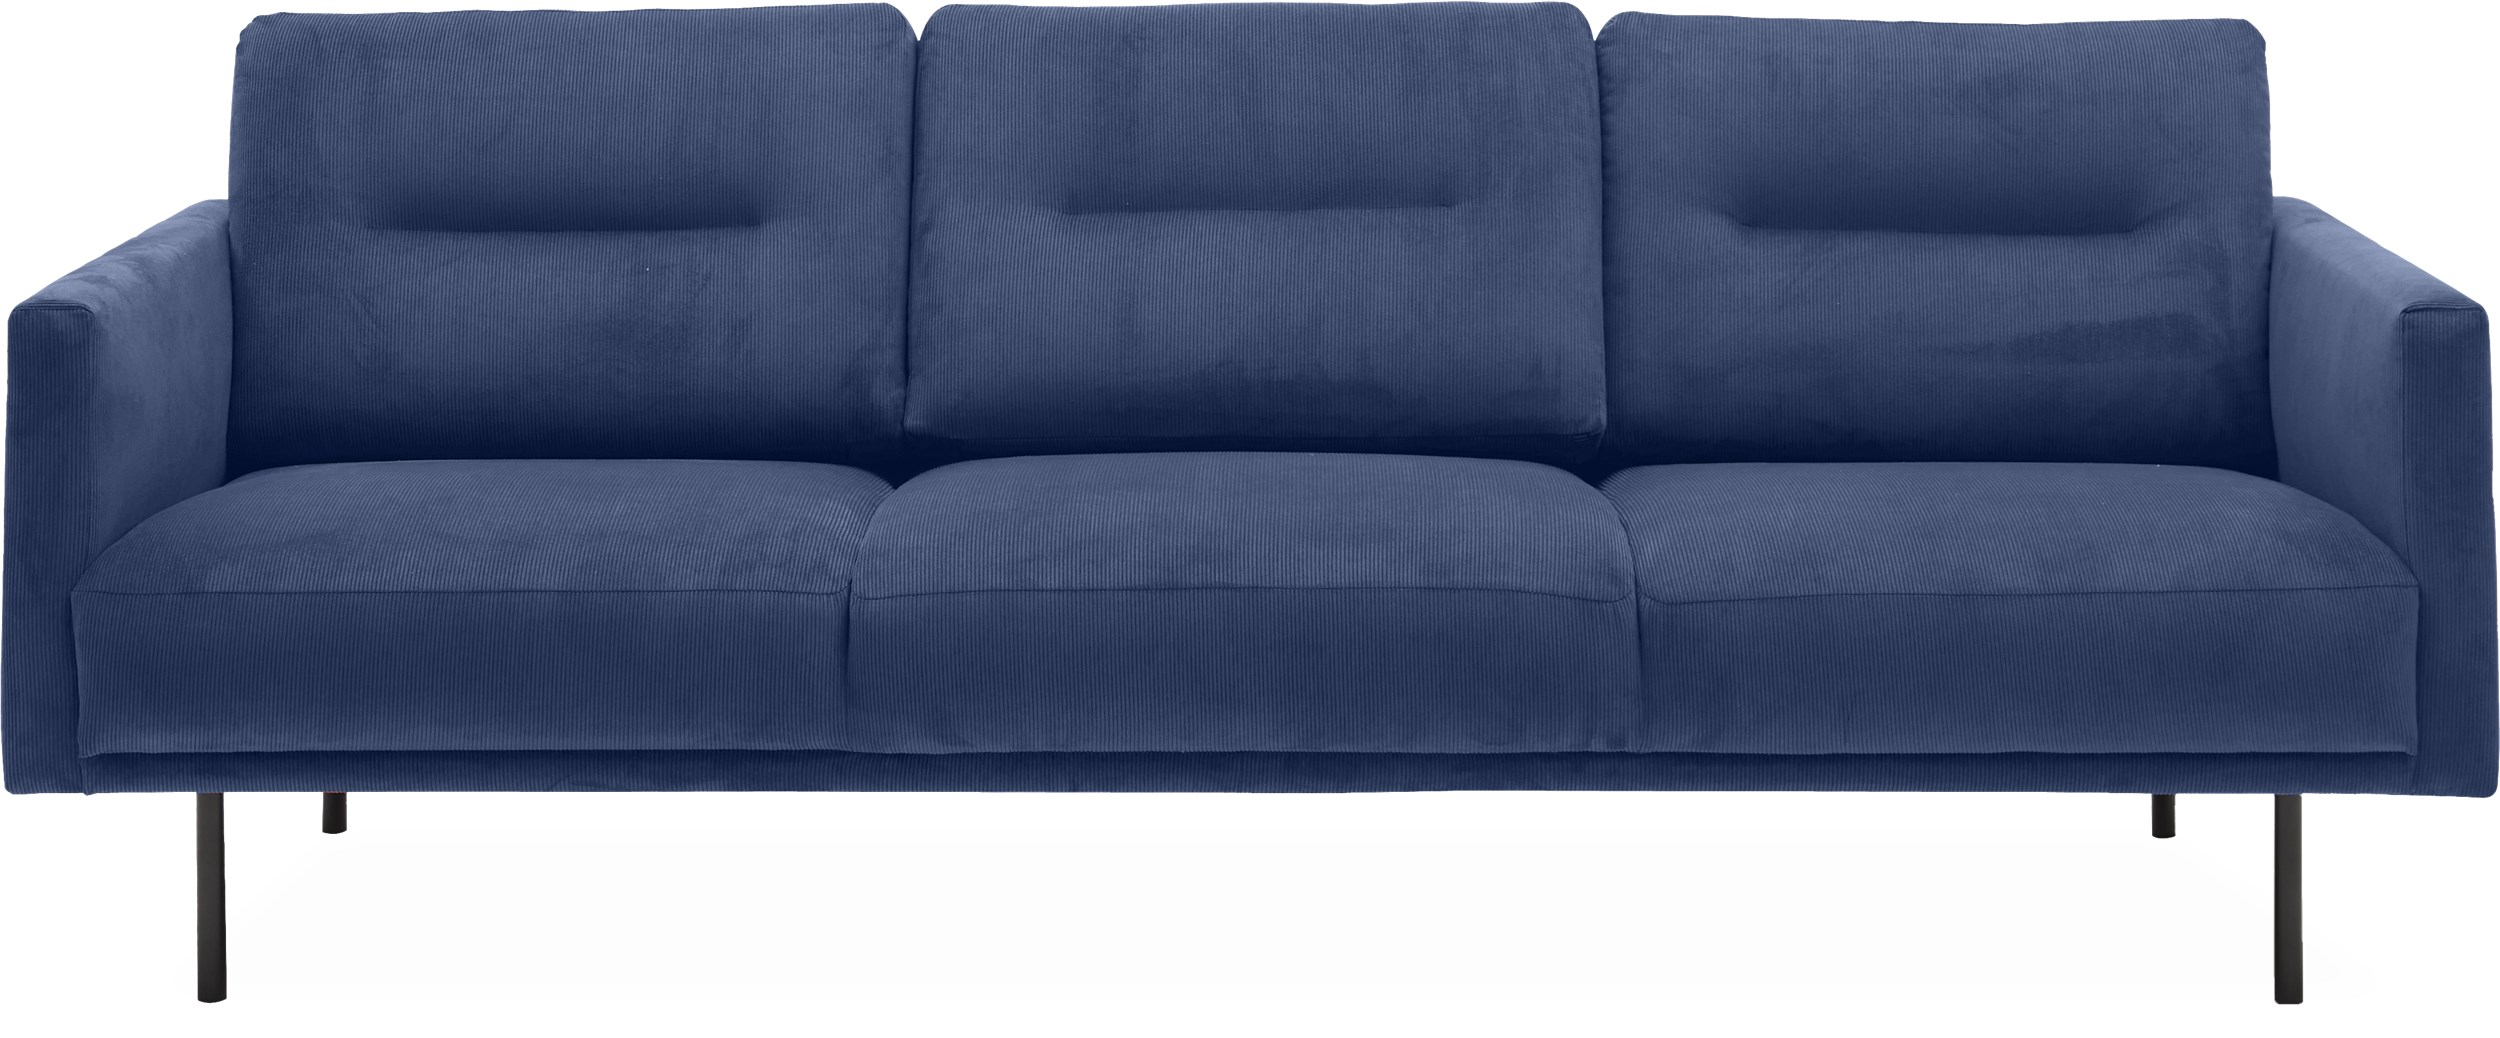 Larvik 3 pers Sofa - Wave 220 Royal blue stof og ben i sortlakeret metal